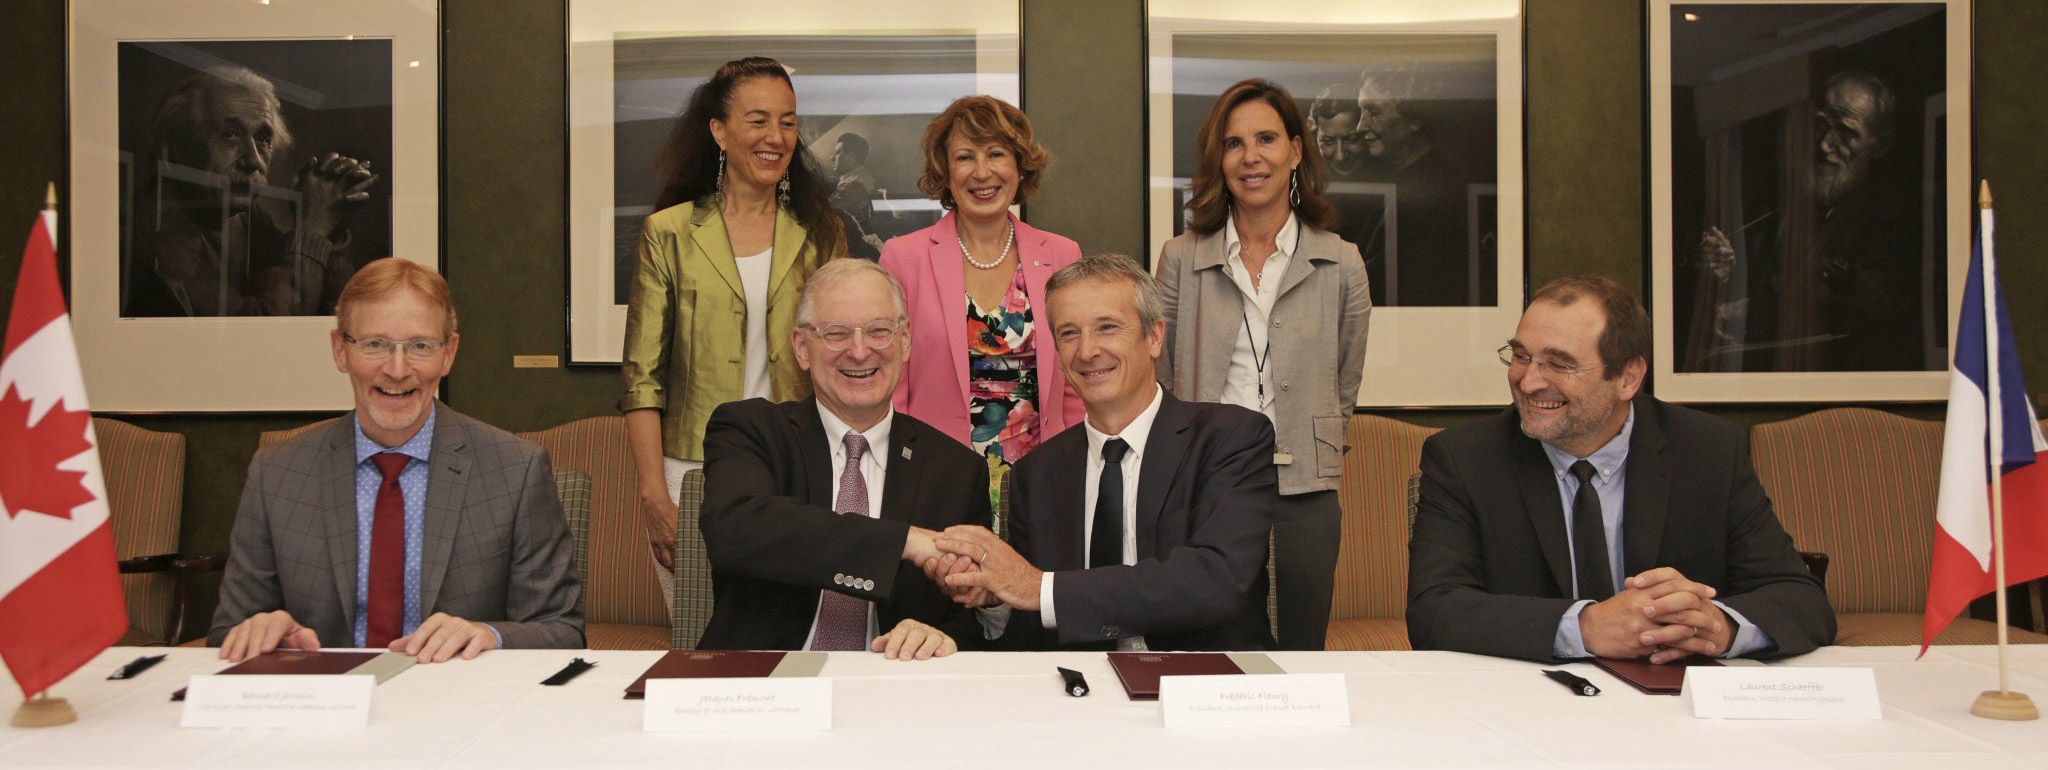 The University of Ottawa Faculty of Medicine and Université Claude Bernard Lyon 1 sign a joint international neuromuscular research partnership.